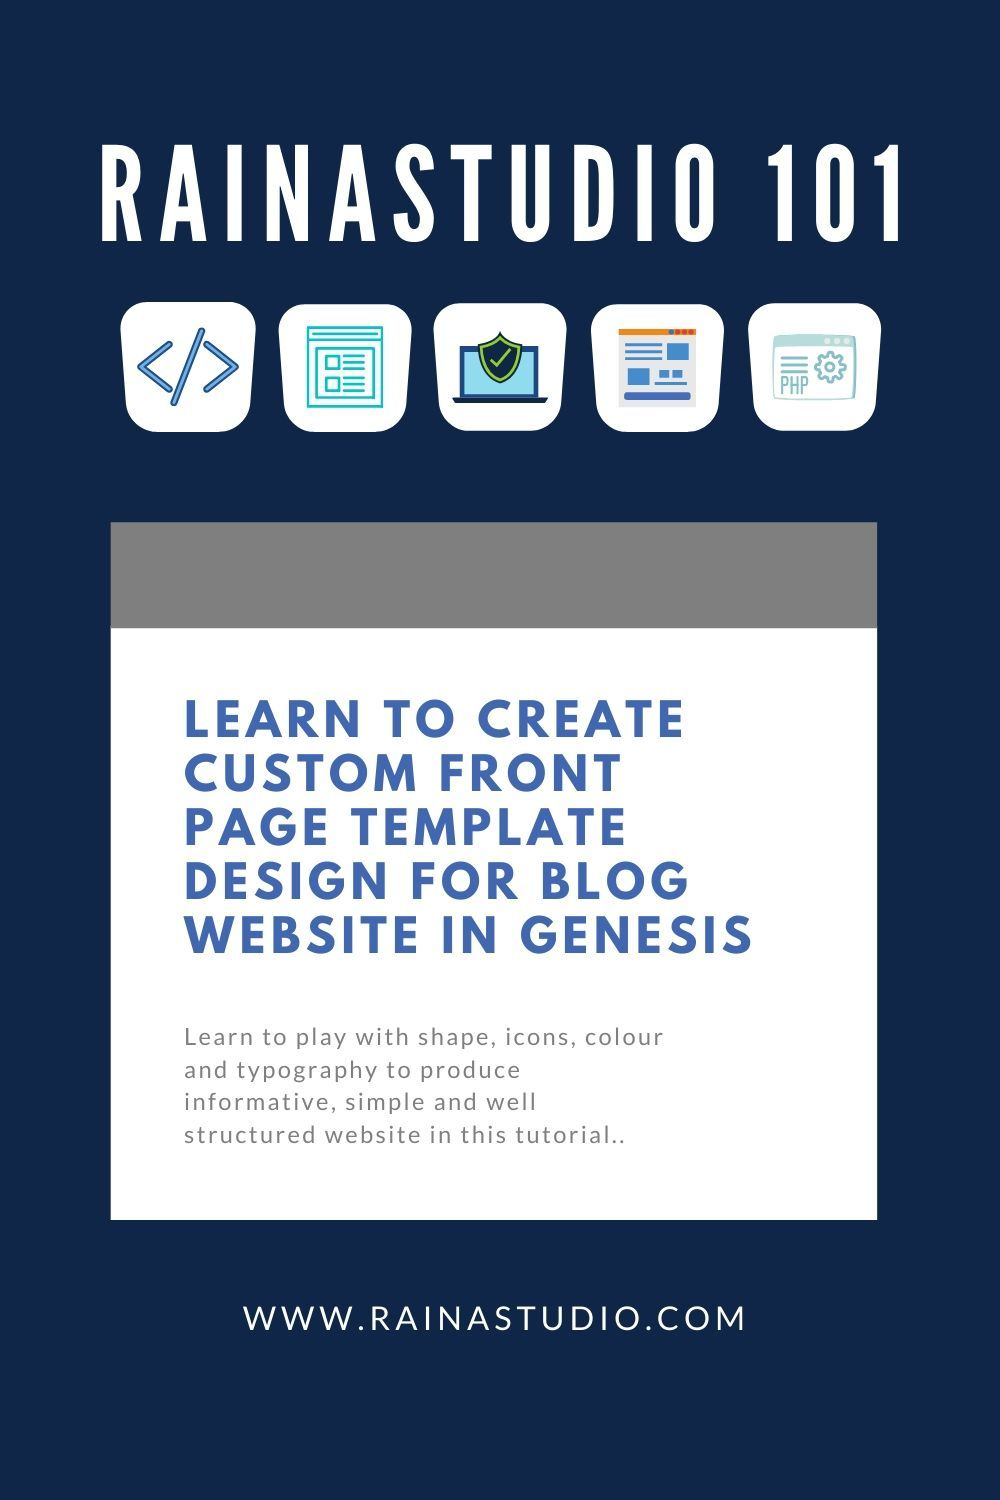 ​Custom Front Page Template Design for Blog Website in Genesis